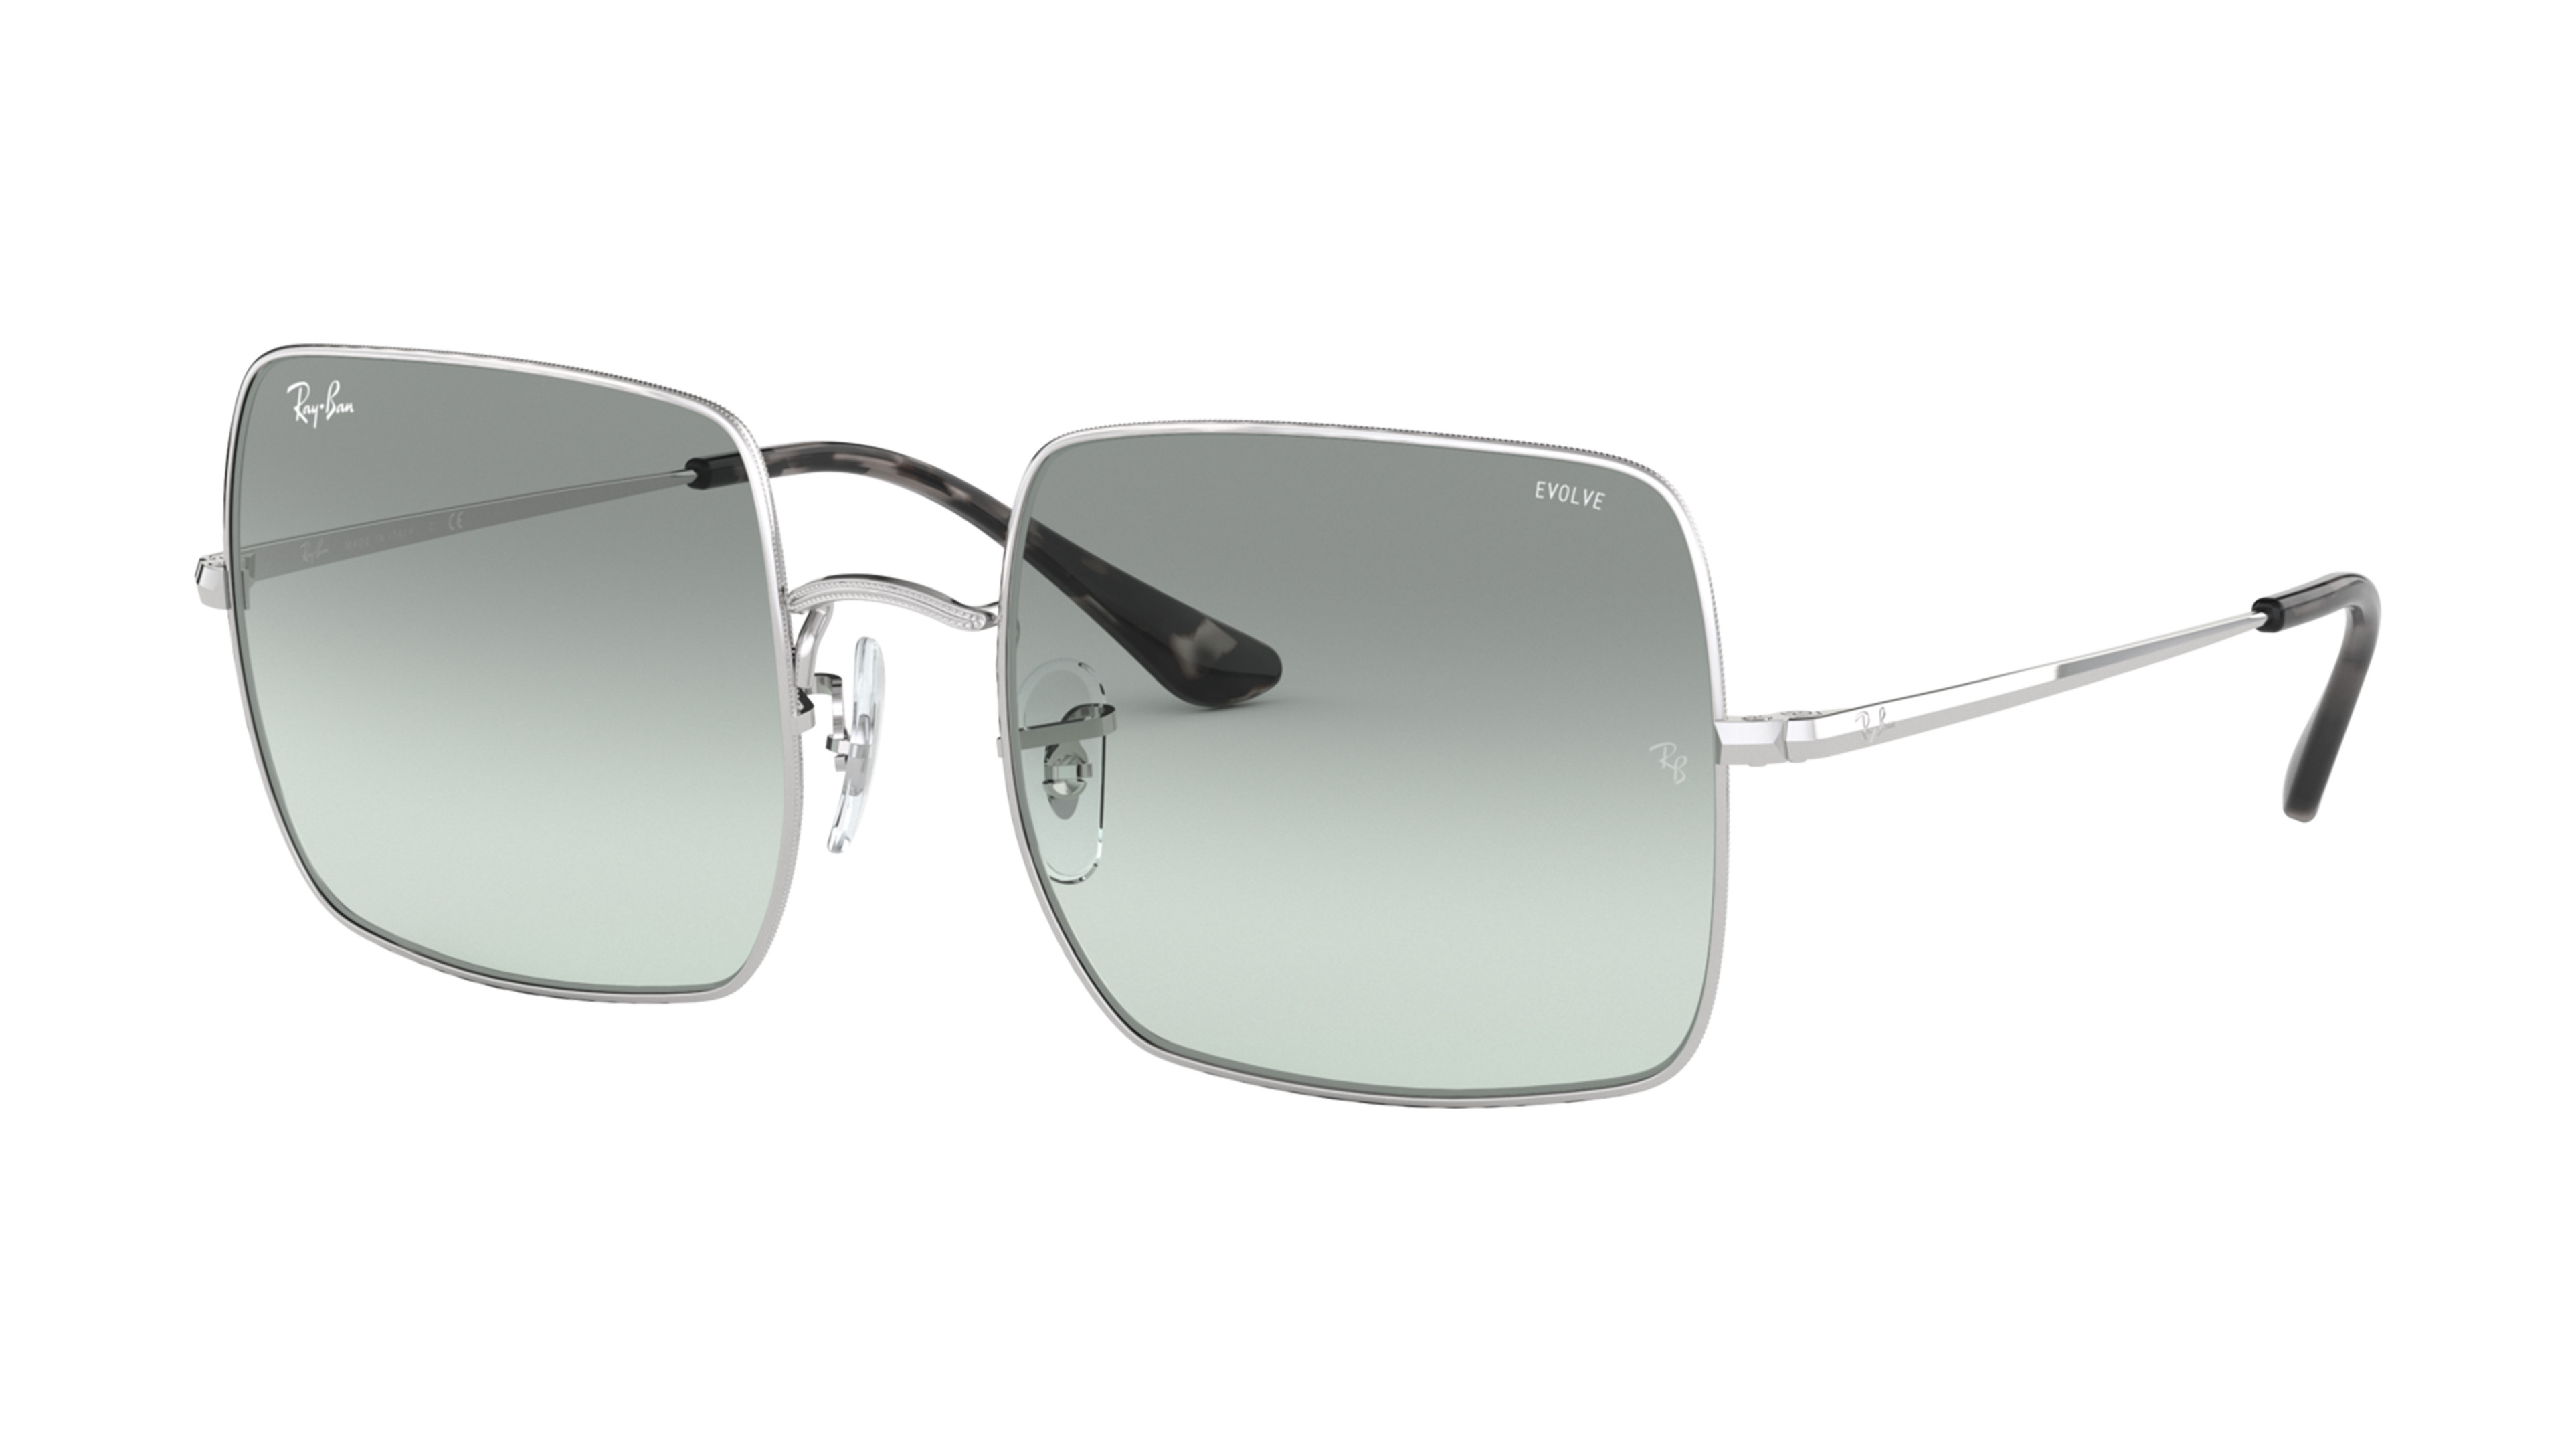 8056597054027-angle-ray-ban-sonnenbrille-0RB1971-9149AD